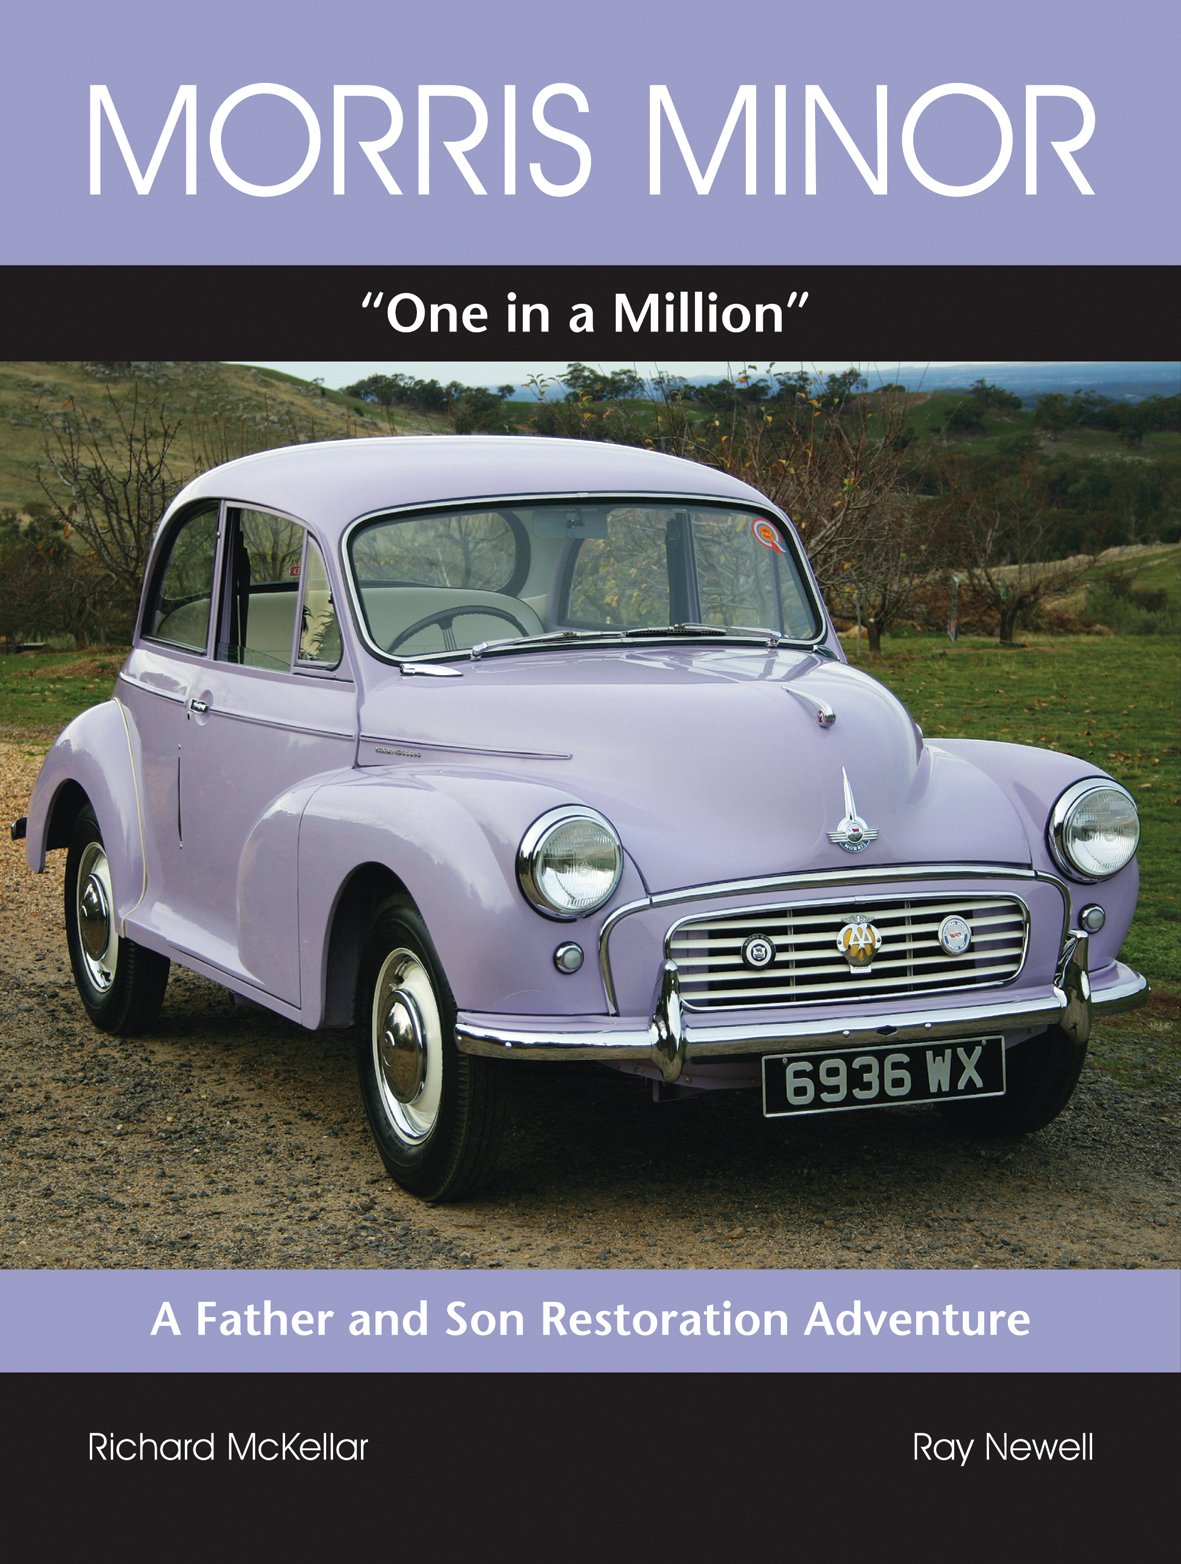 Morris Minor - One in a Million